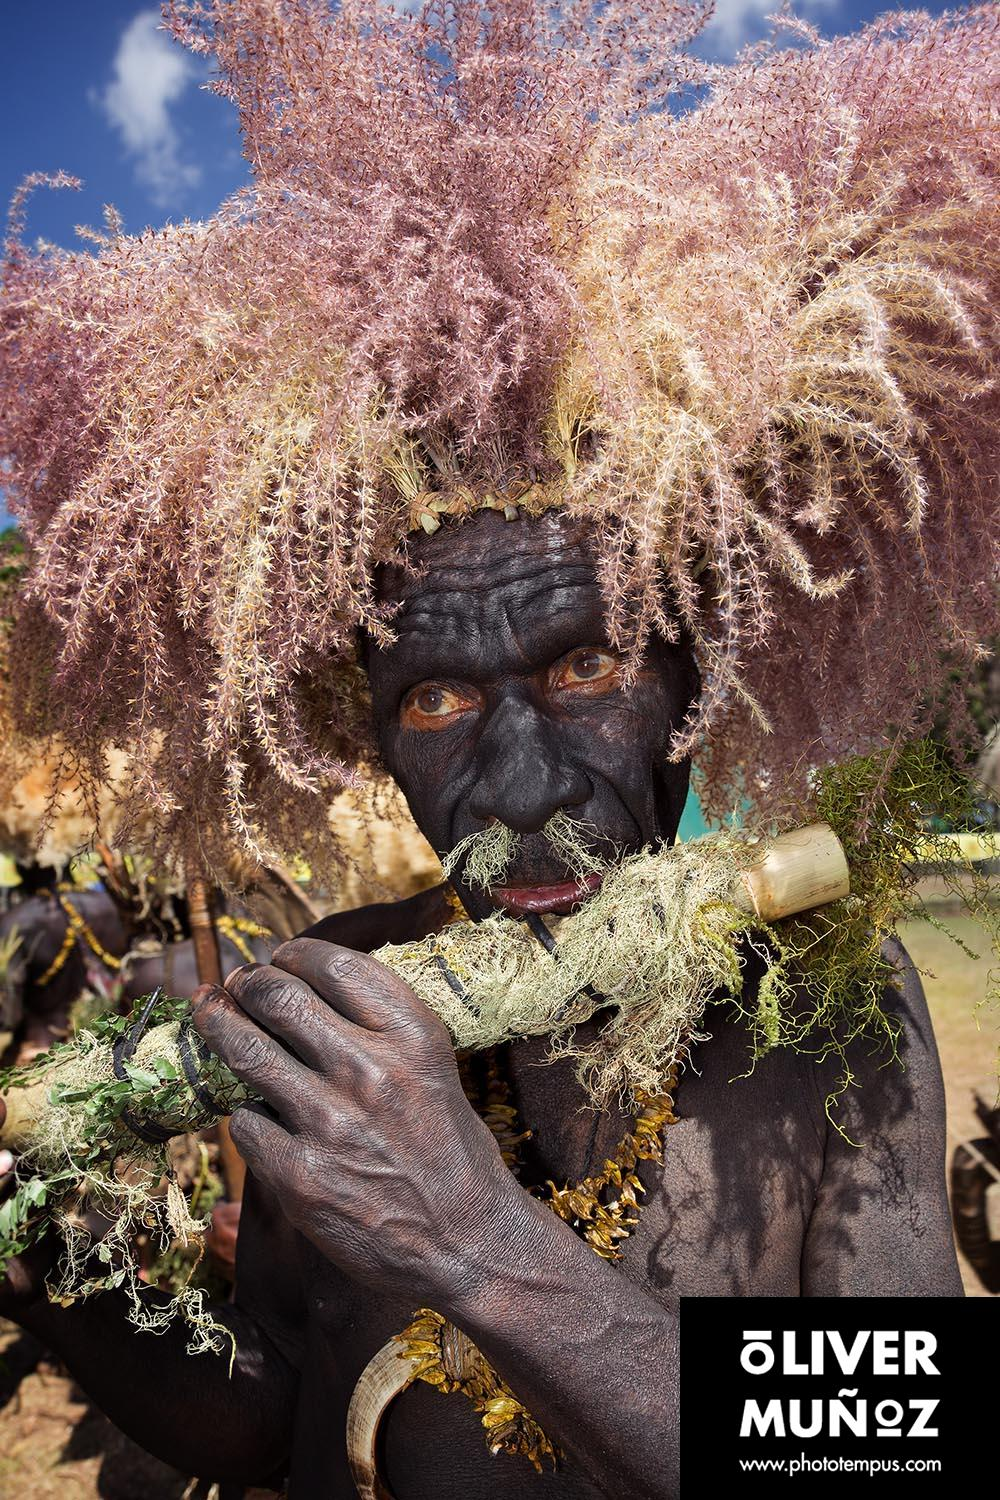 A fascinating country, Papua New Guinea